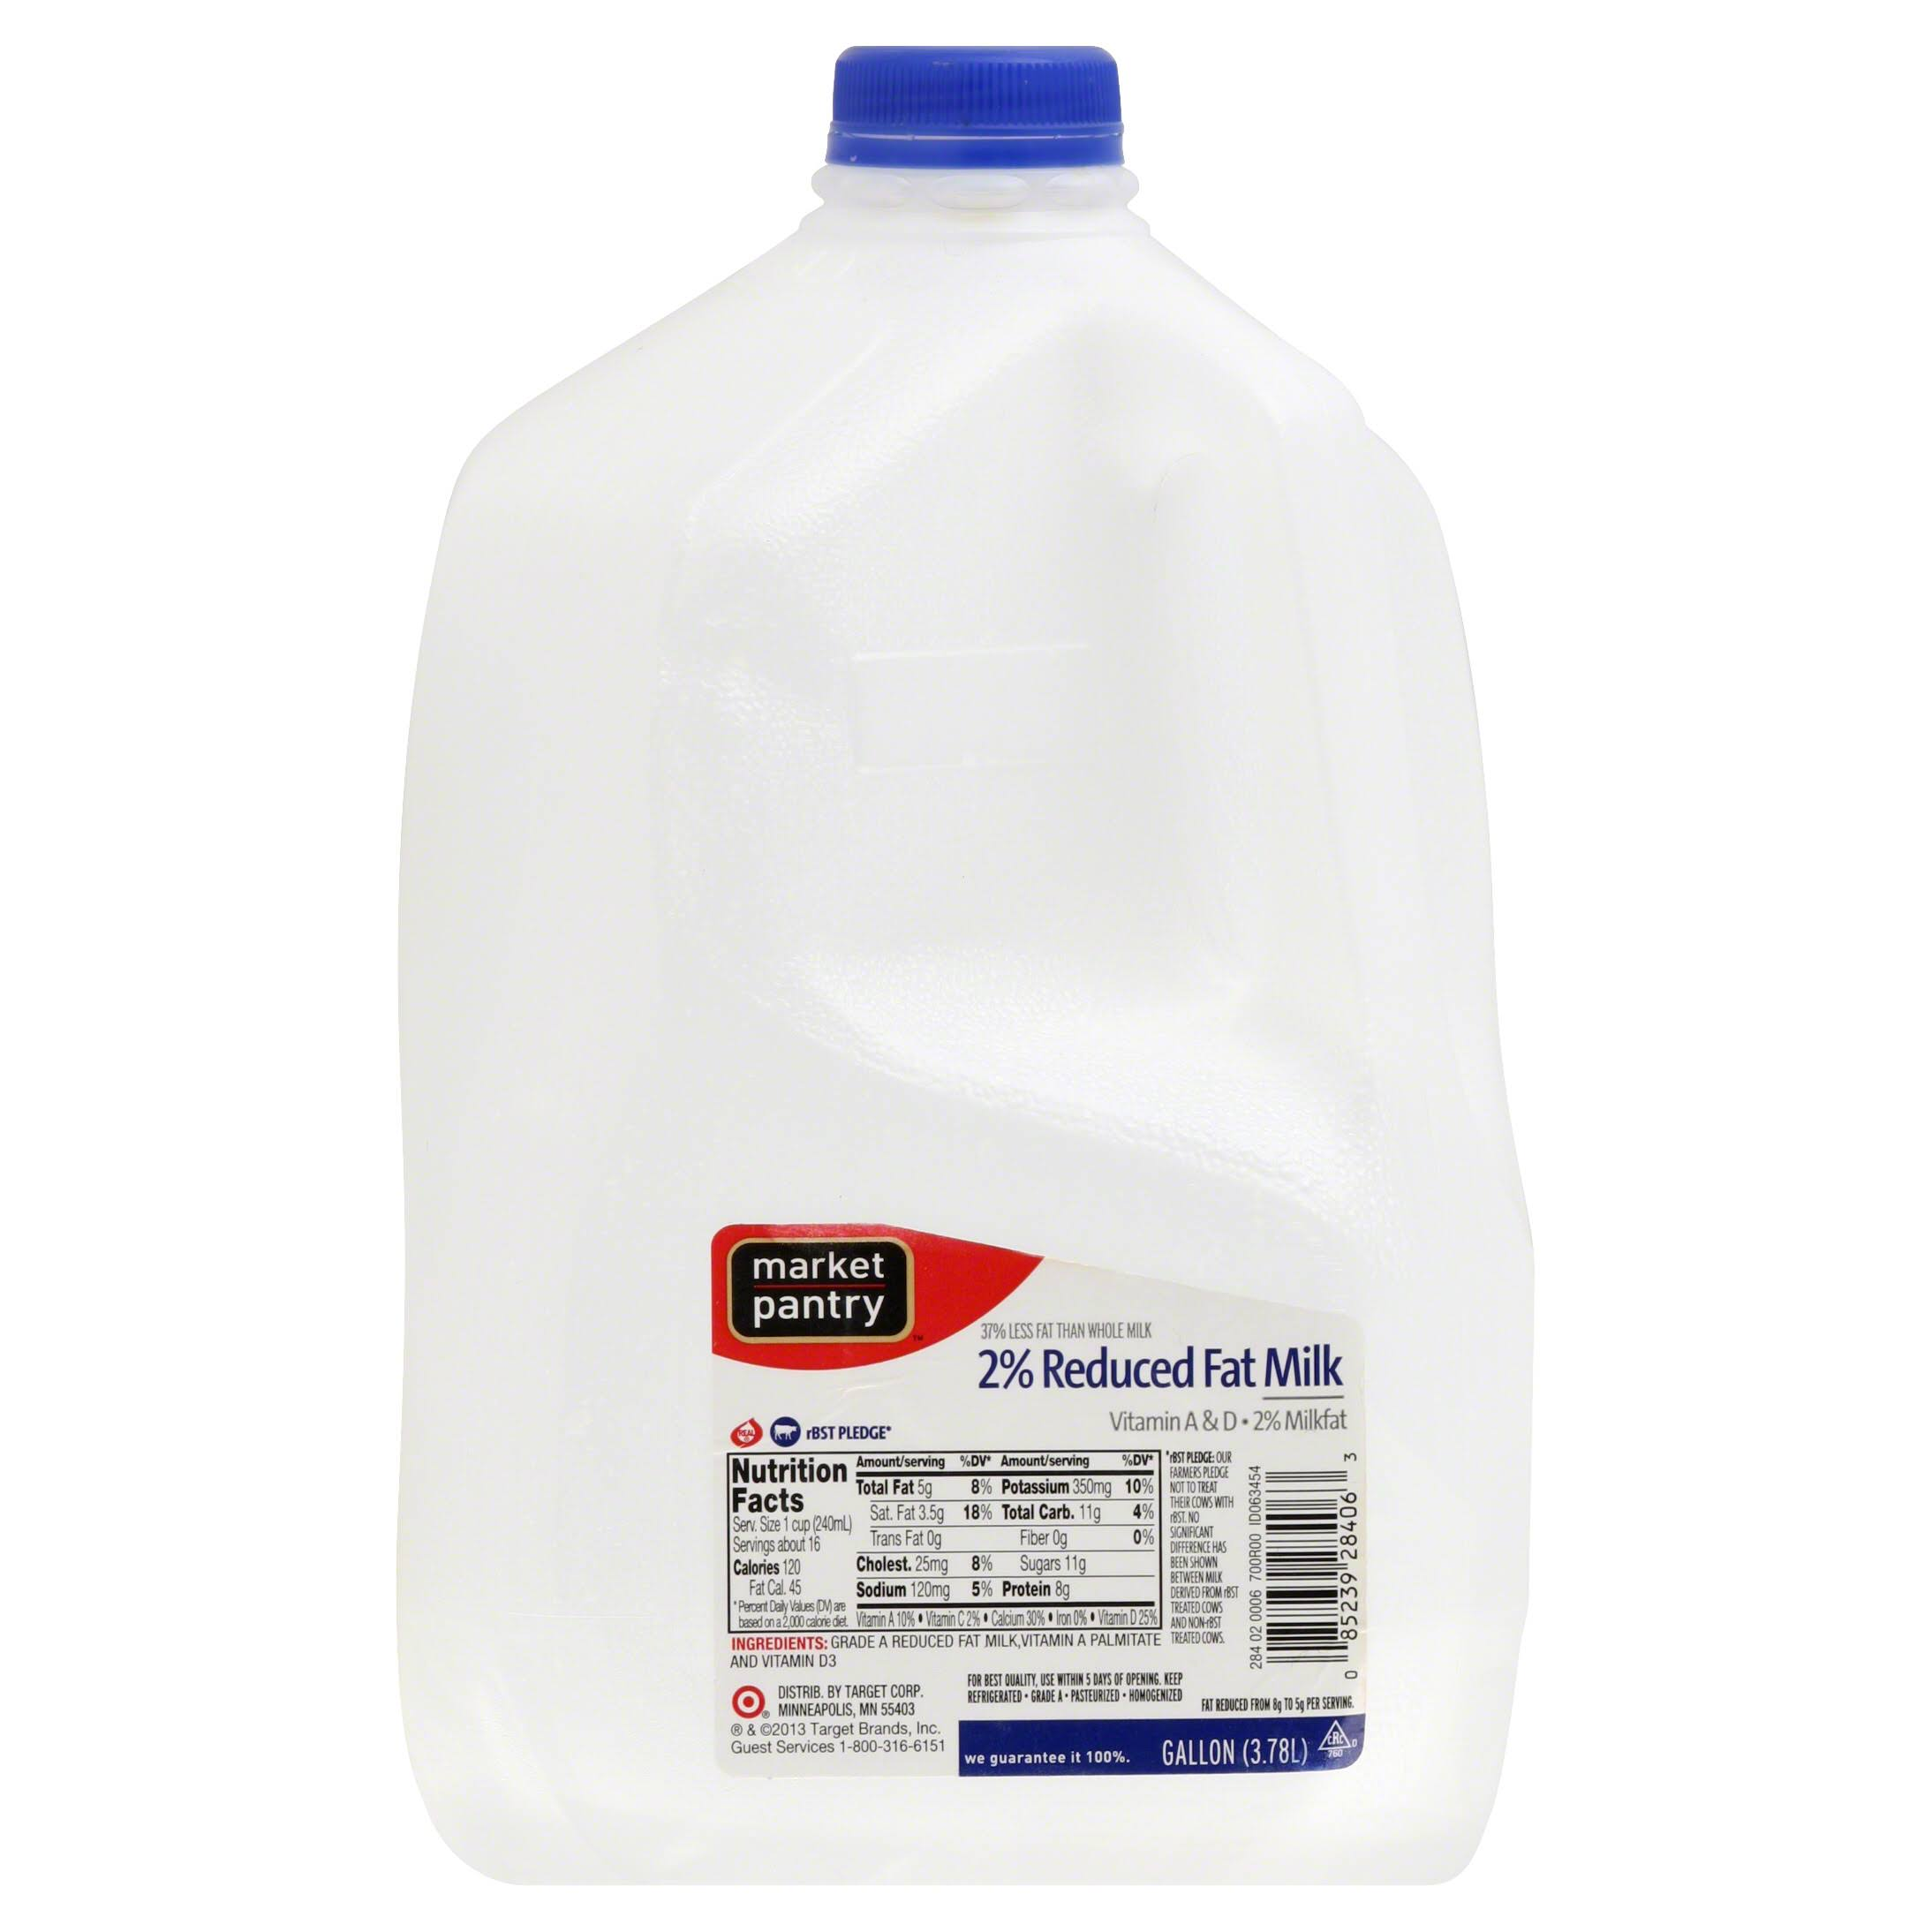 Market Pantry Milk, Reduced Fat, 2% Milkfat - 1 gl (3.78 lt)